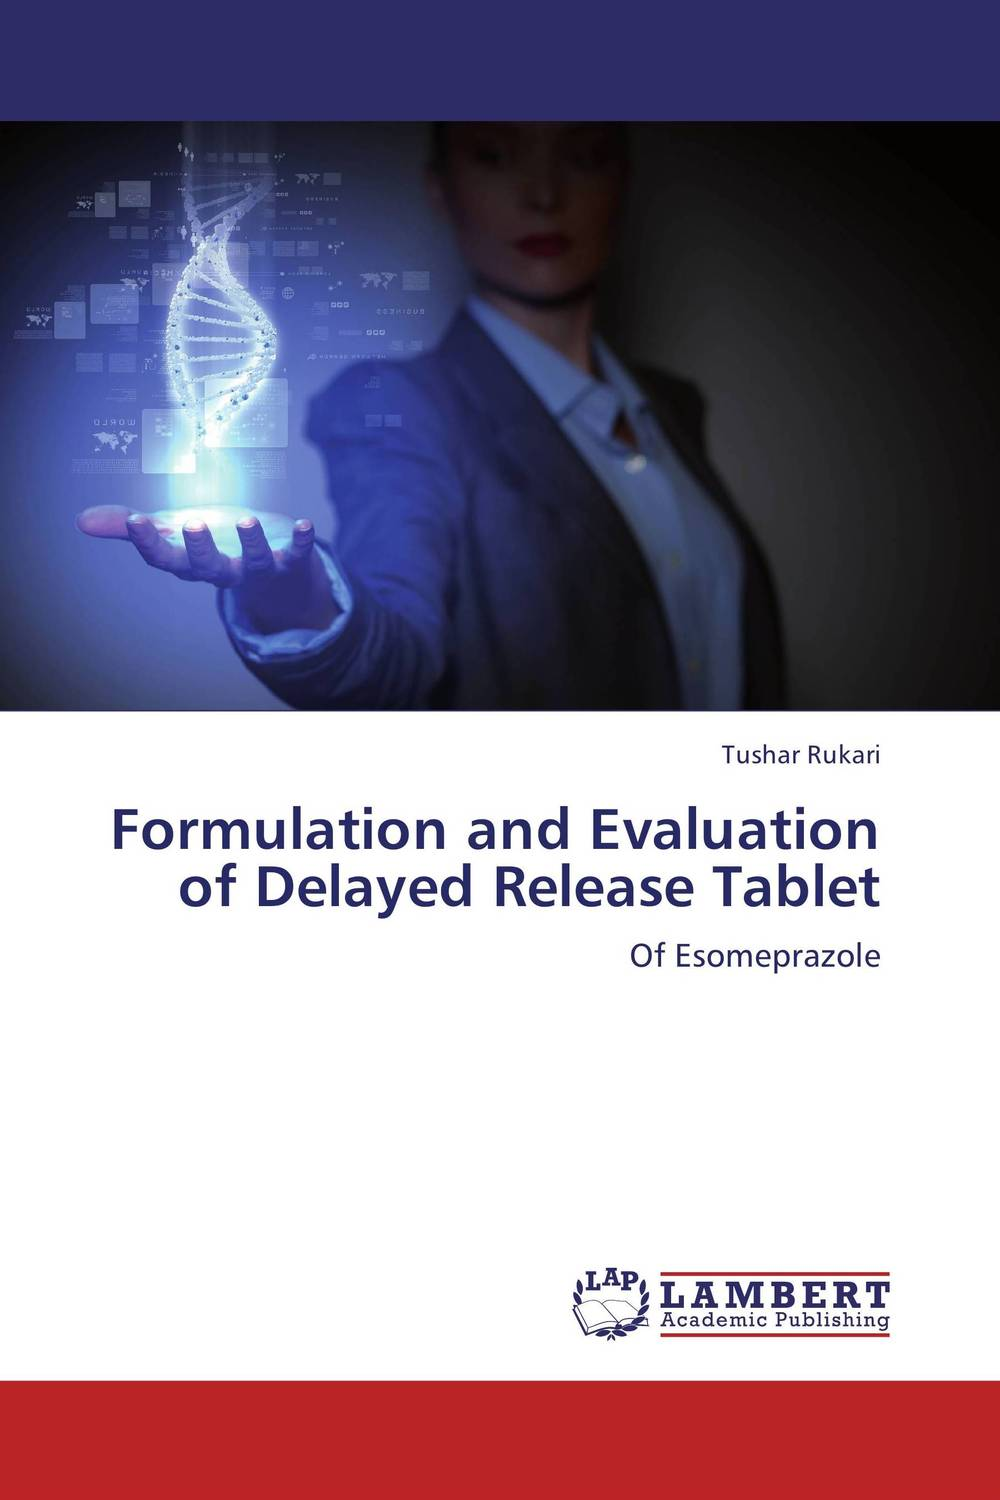 Formulation and Evaluation of Delayed Release Tablet the role of evaluation as a mechanism for advancing principal practice